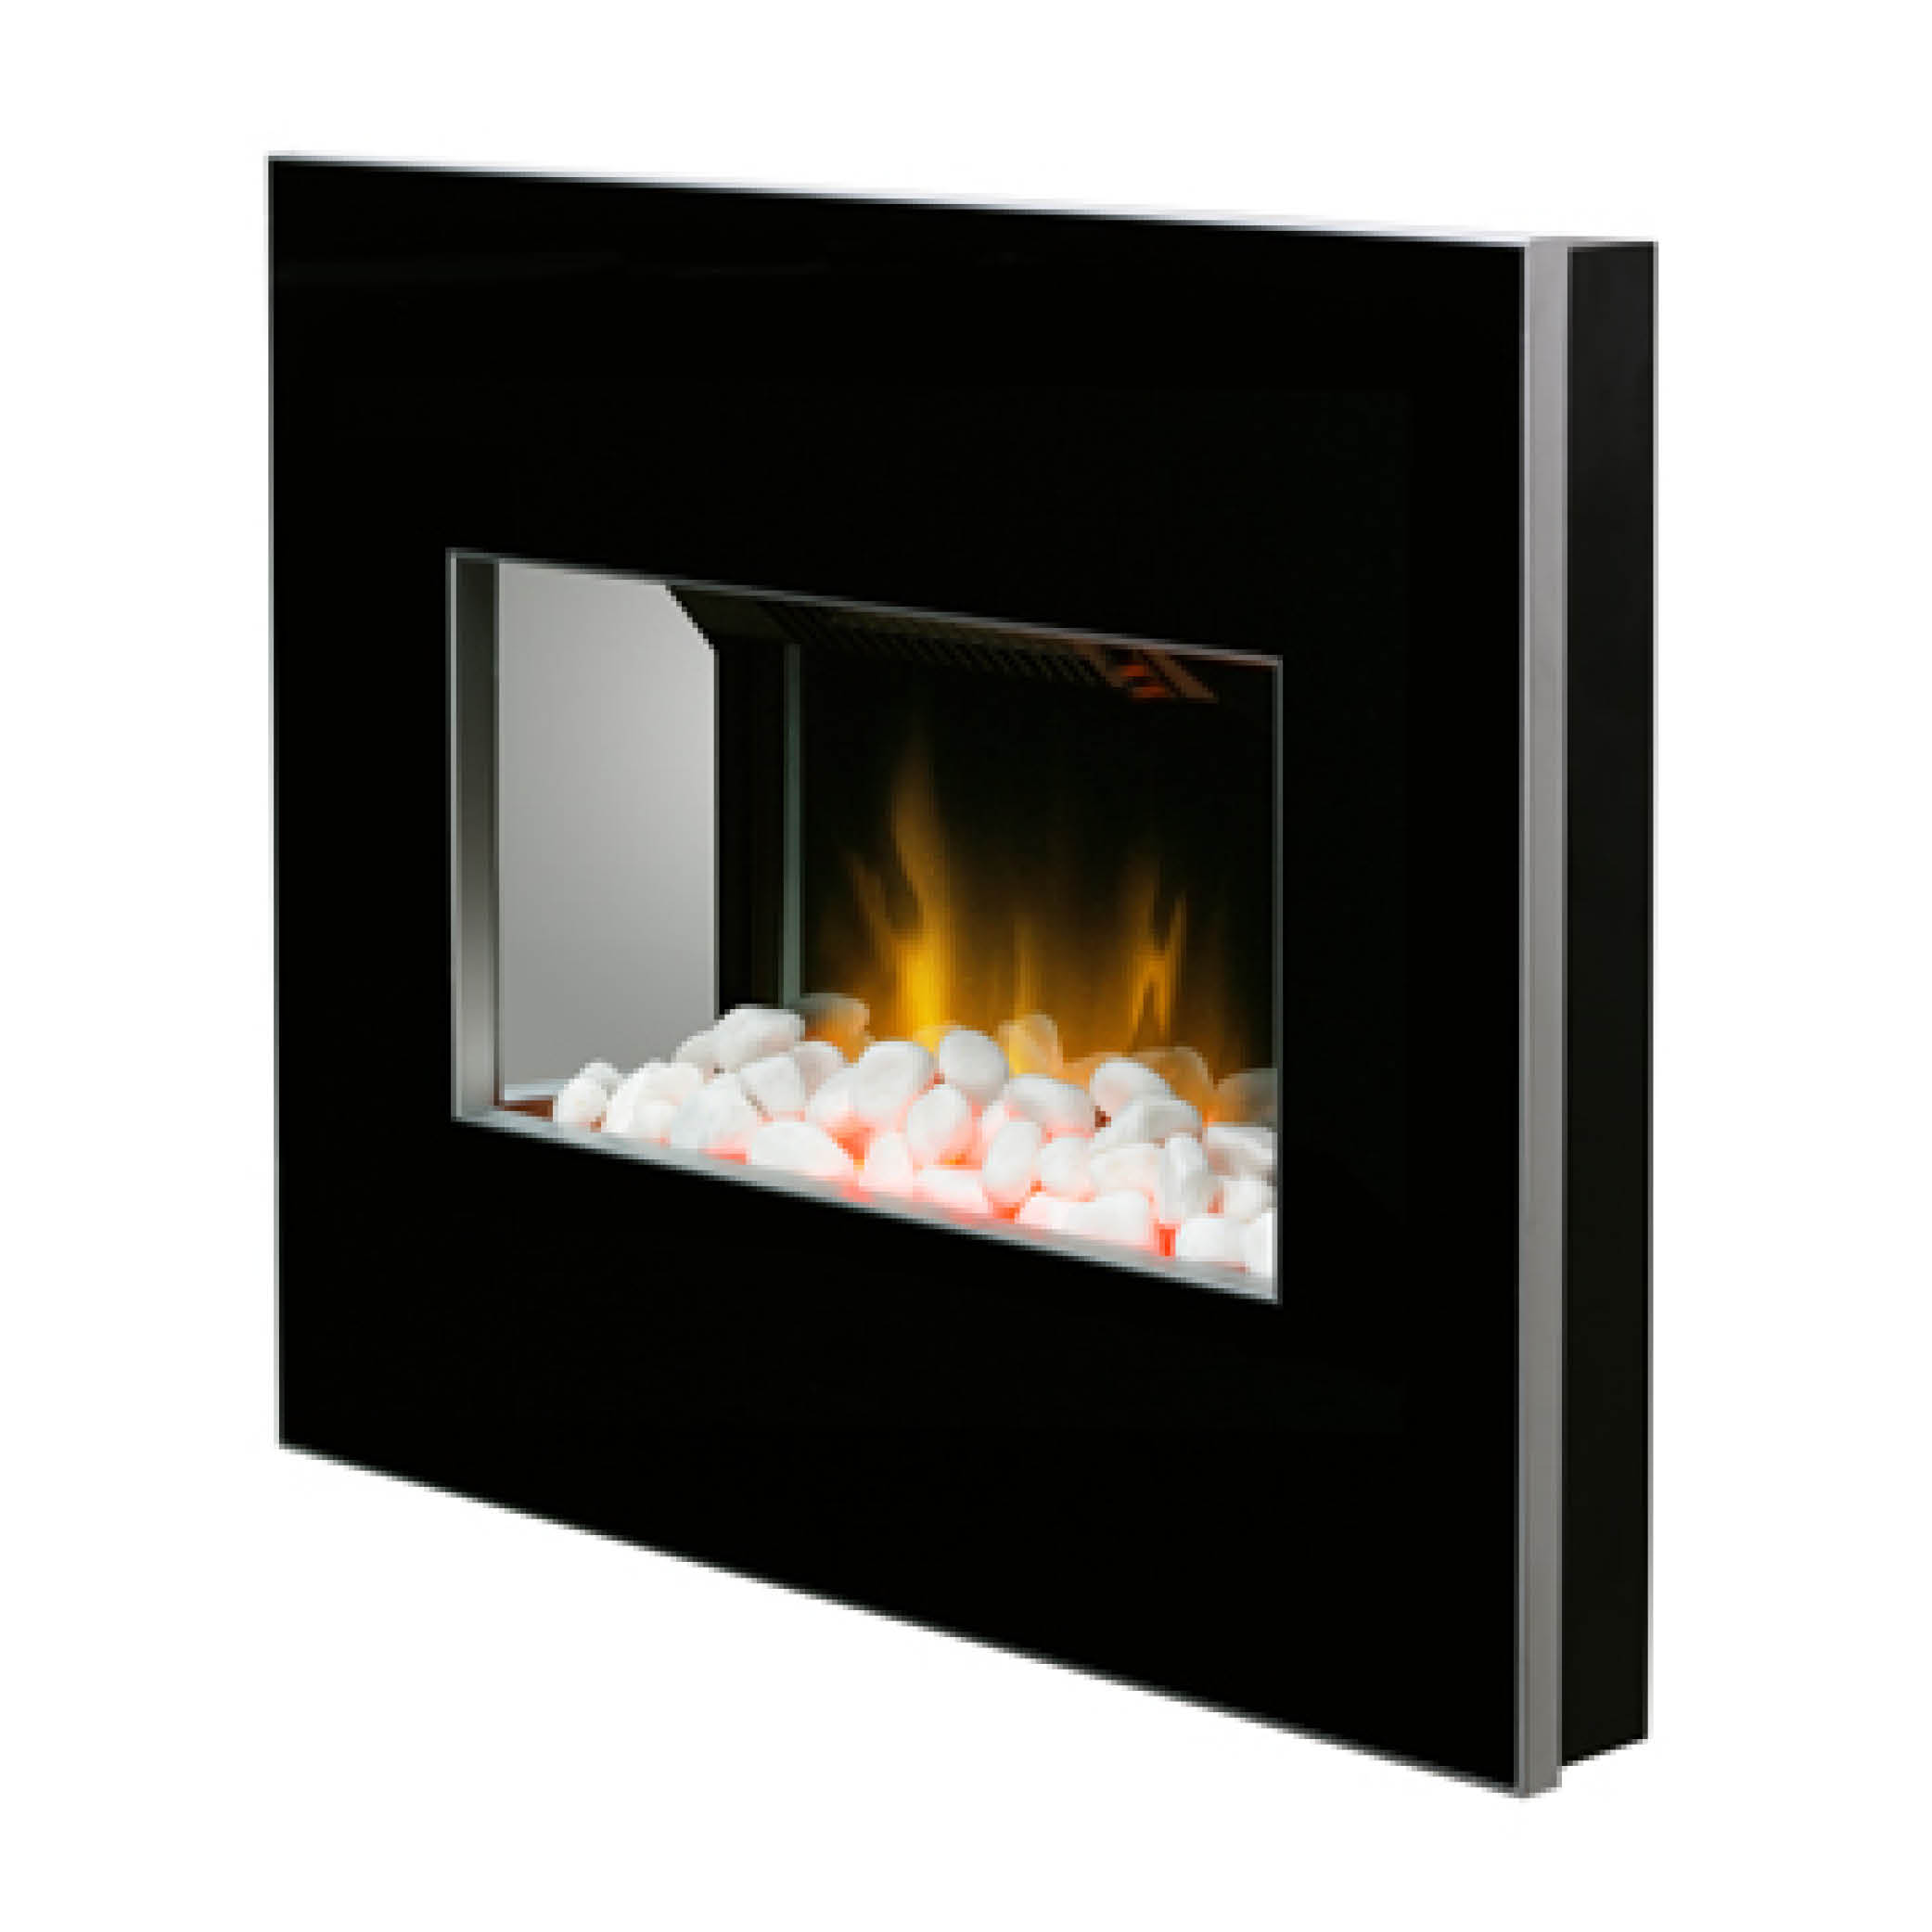 Black wall mounted electric fireplace - Clova Black White 2kw Wall Mounted Electric Fire Model Clova B Model Clova W Gold Coast Fireplace And Bbq Super Centre